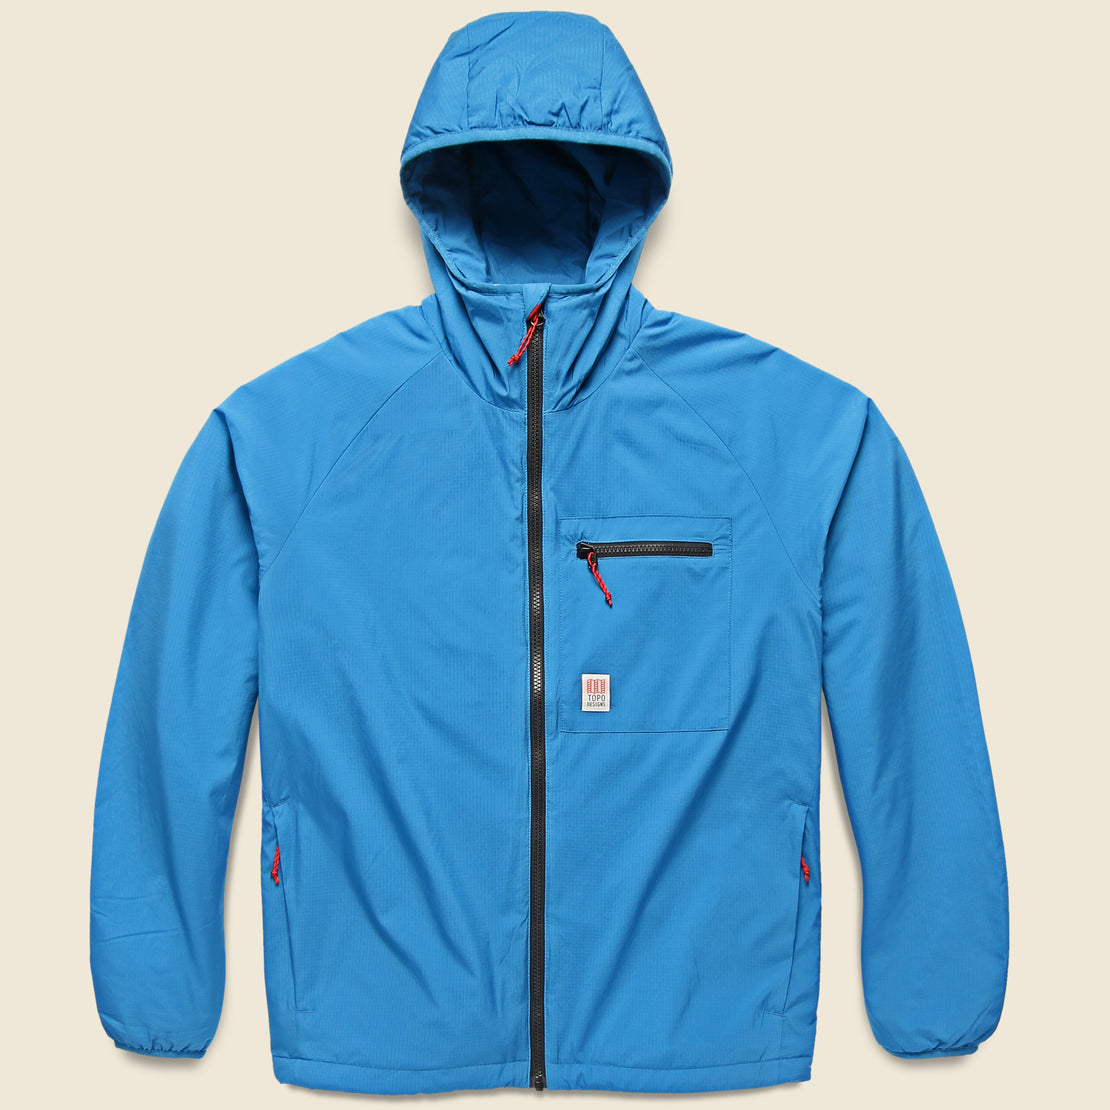 Topo Designs Puffer Zip Jacket - Blue